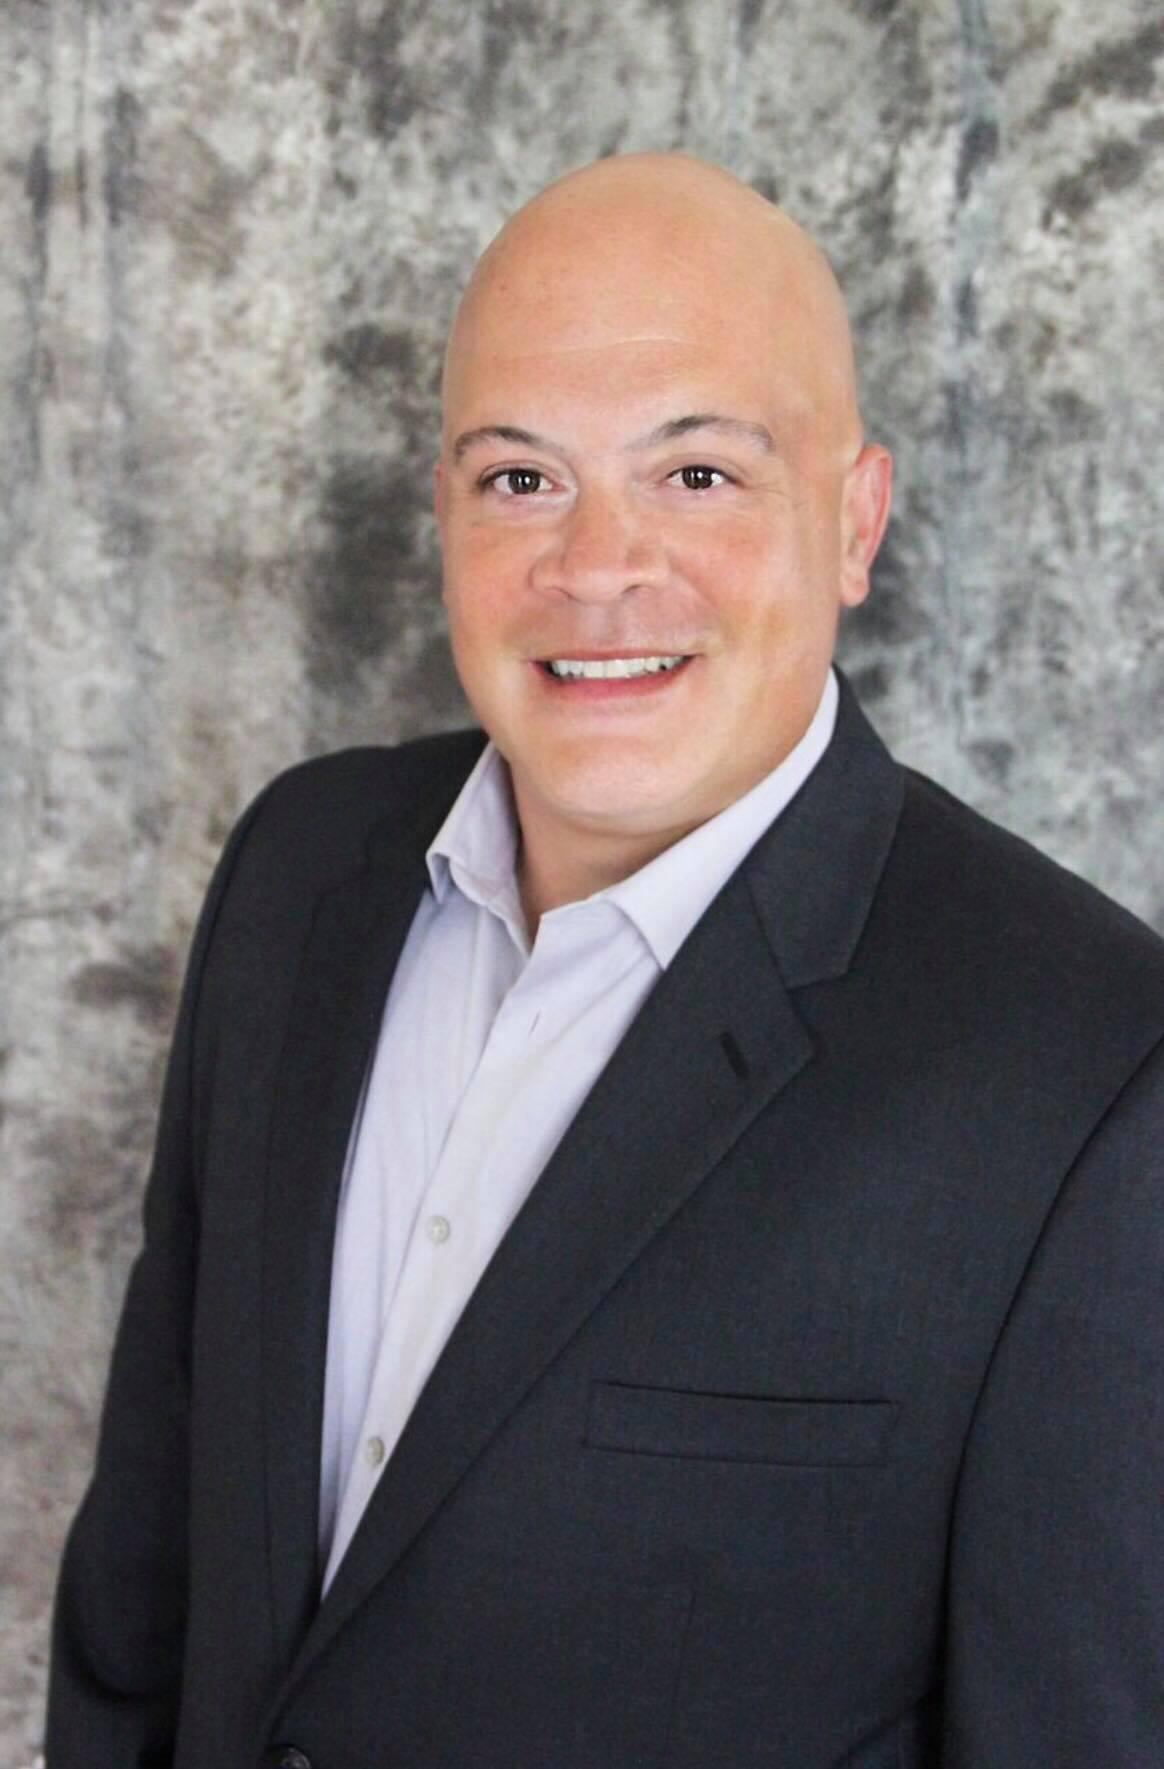 Alexander Fortis | President & CEO of Exclusive Cleaning Services